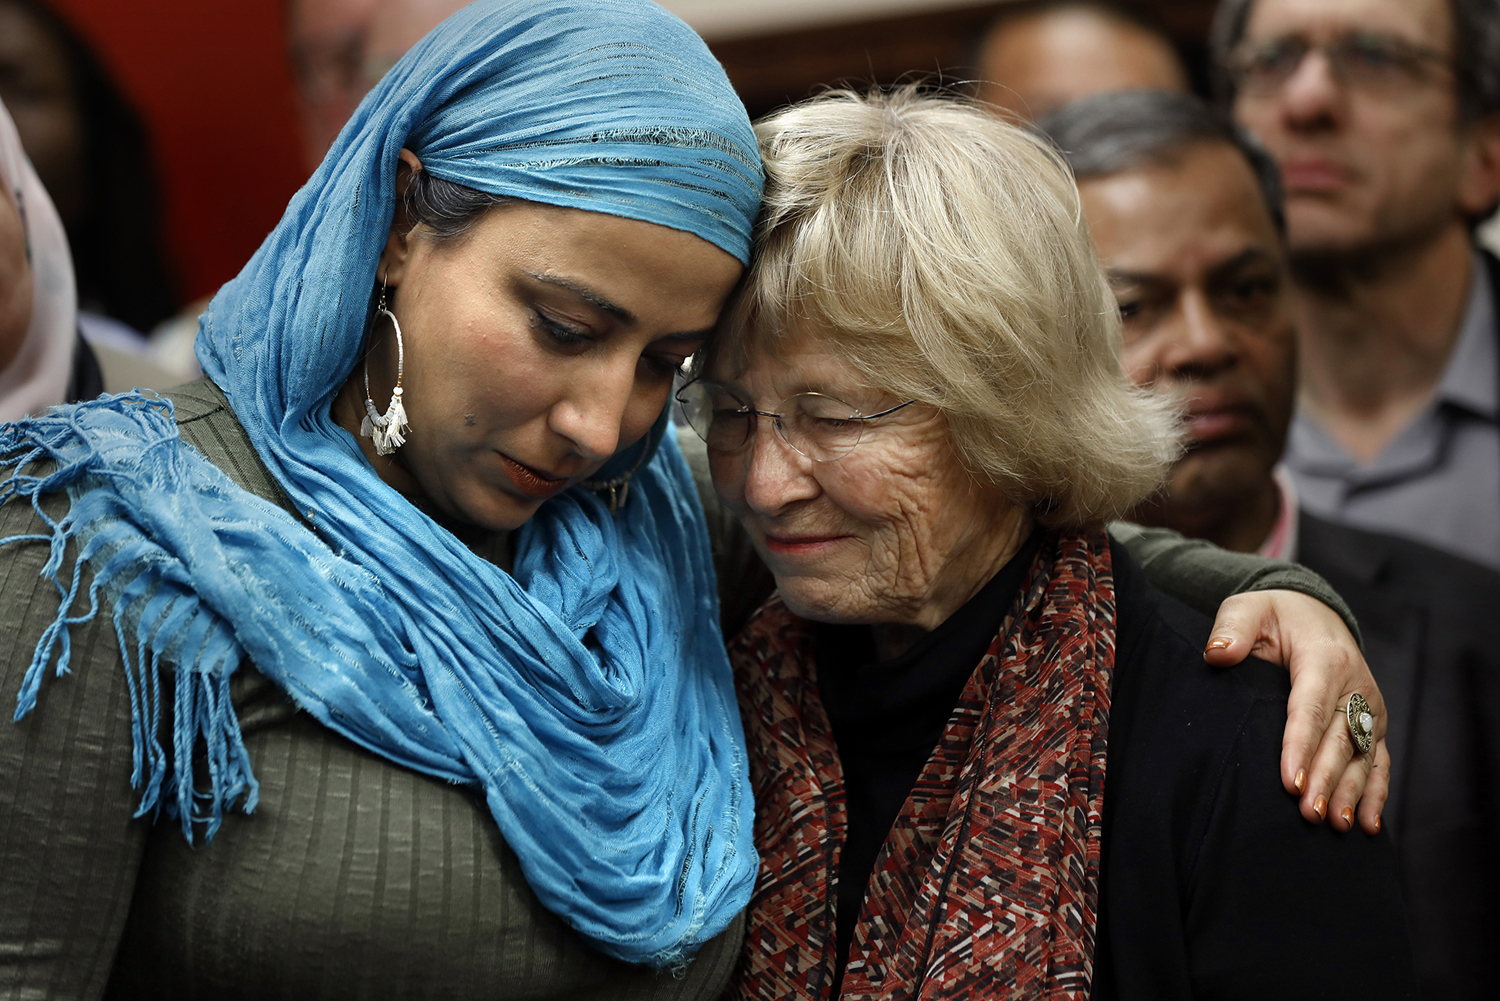 Najeeba Syeed, left, of Los Angeles, hugs Judy Gilliland, of Lakewood, California, during a news conference at The Islamic Center of Los Angeles on Friday, March 15. Muslims and people of all faiths came together in prayer at The Islamic Center of Los Angeles one day after the shooting in a mosque in New Zealand killed 50 people.